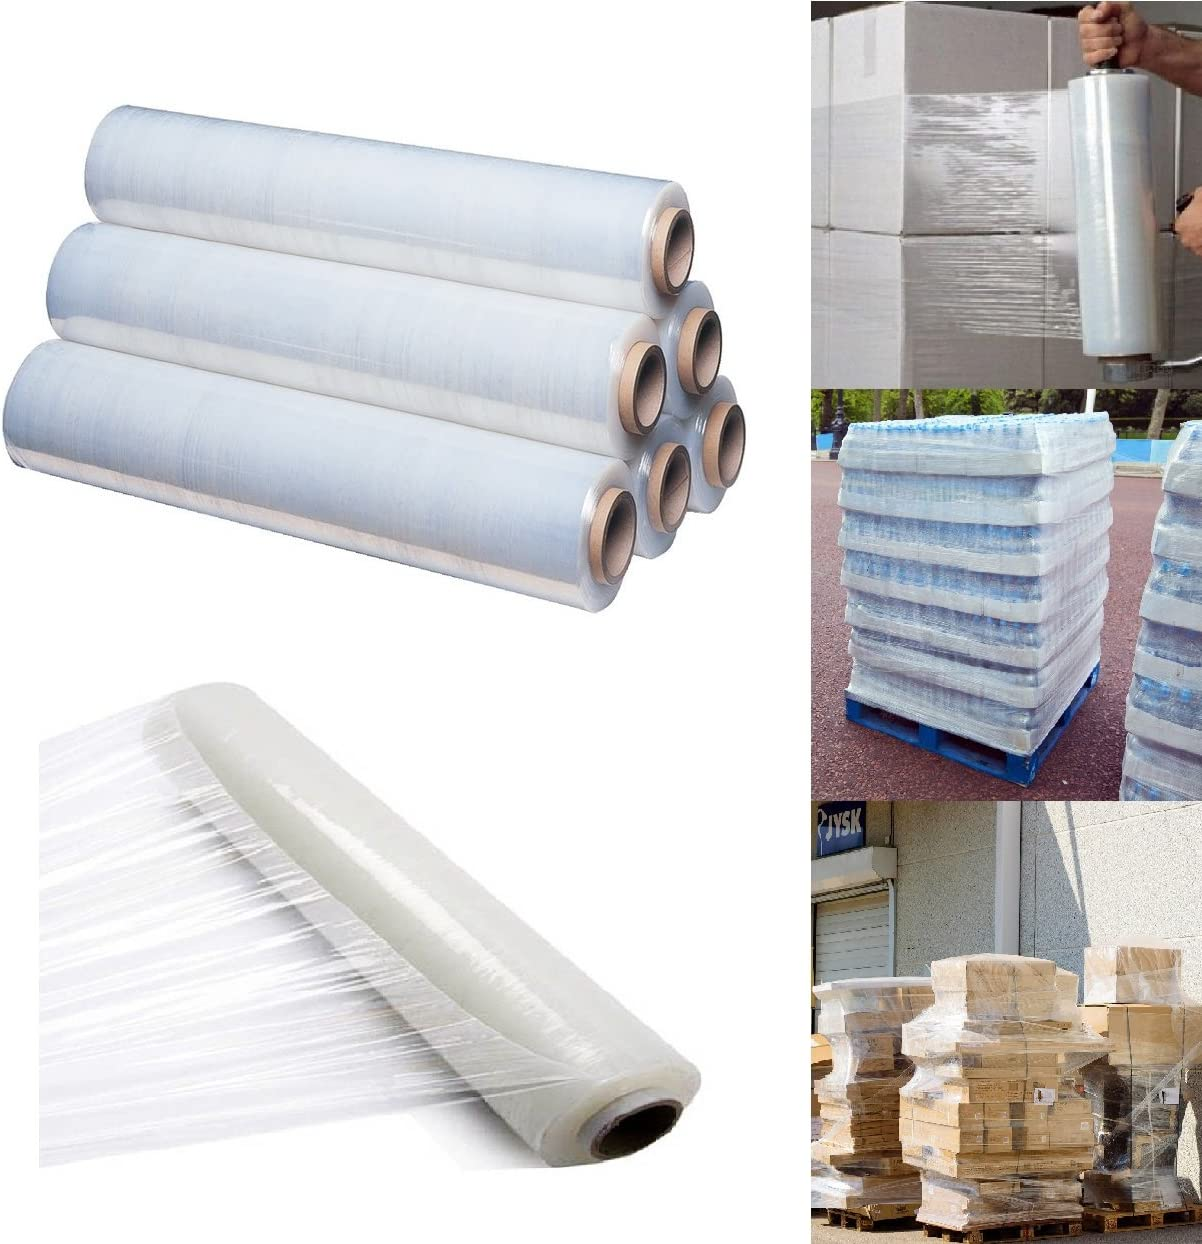 400mm X 250 meter Rolls Clear Pallet Stretch Shrink Wrap Parcel Packing Cling Film Pack of 4